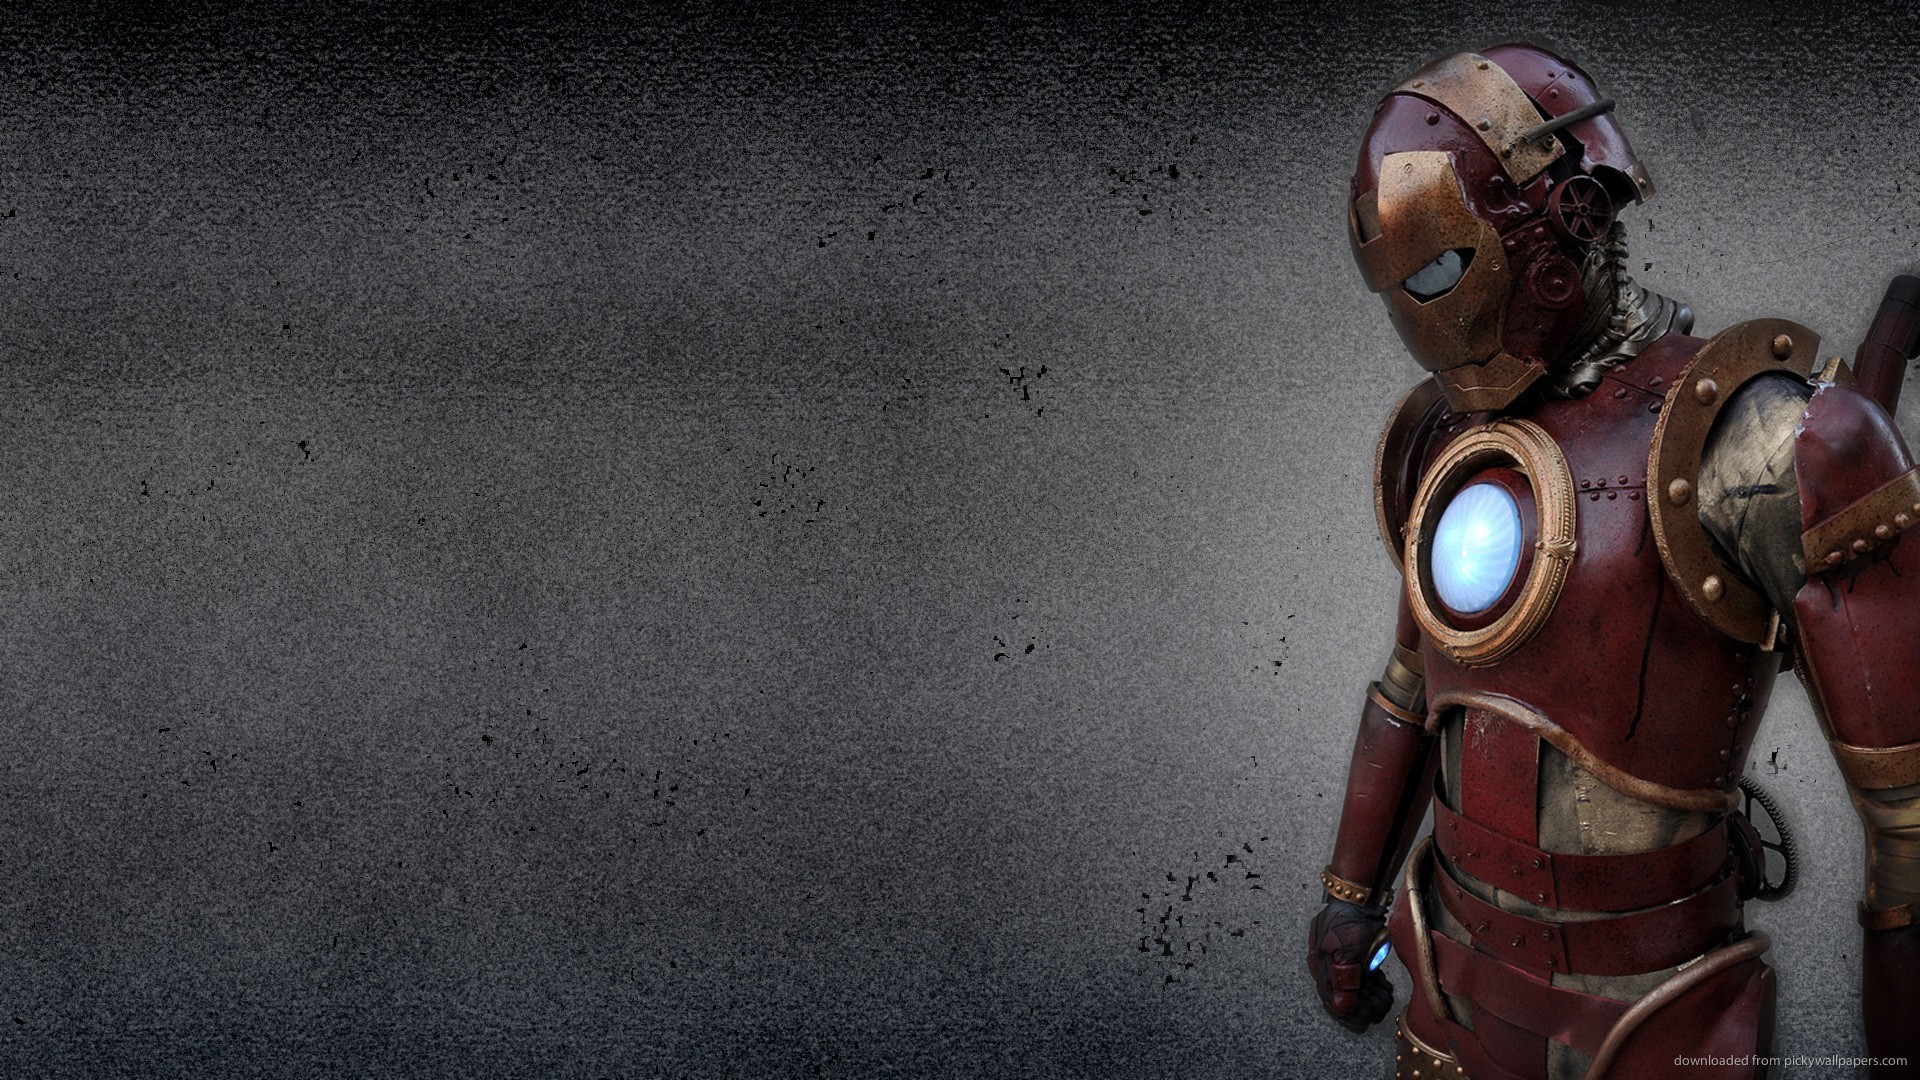 Man Steampunk Picture For iPhone Blackberry iPad Iron Man Steampunk 1920x1080